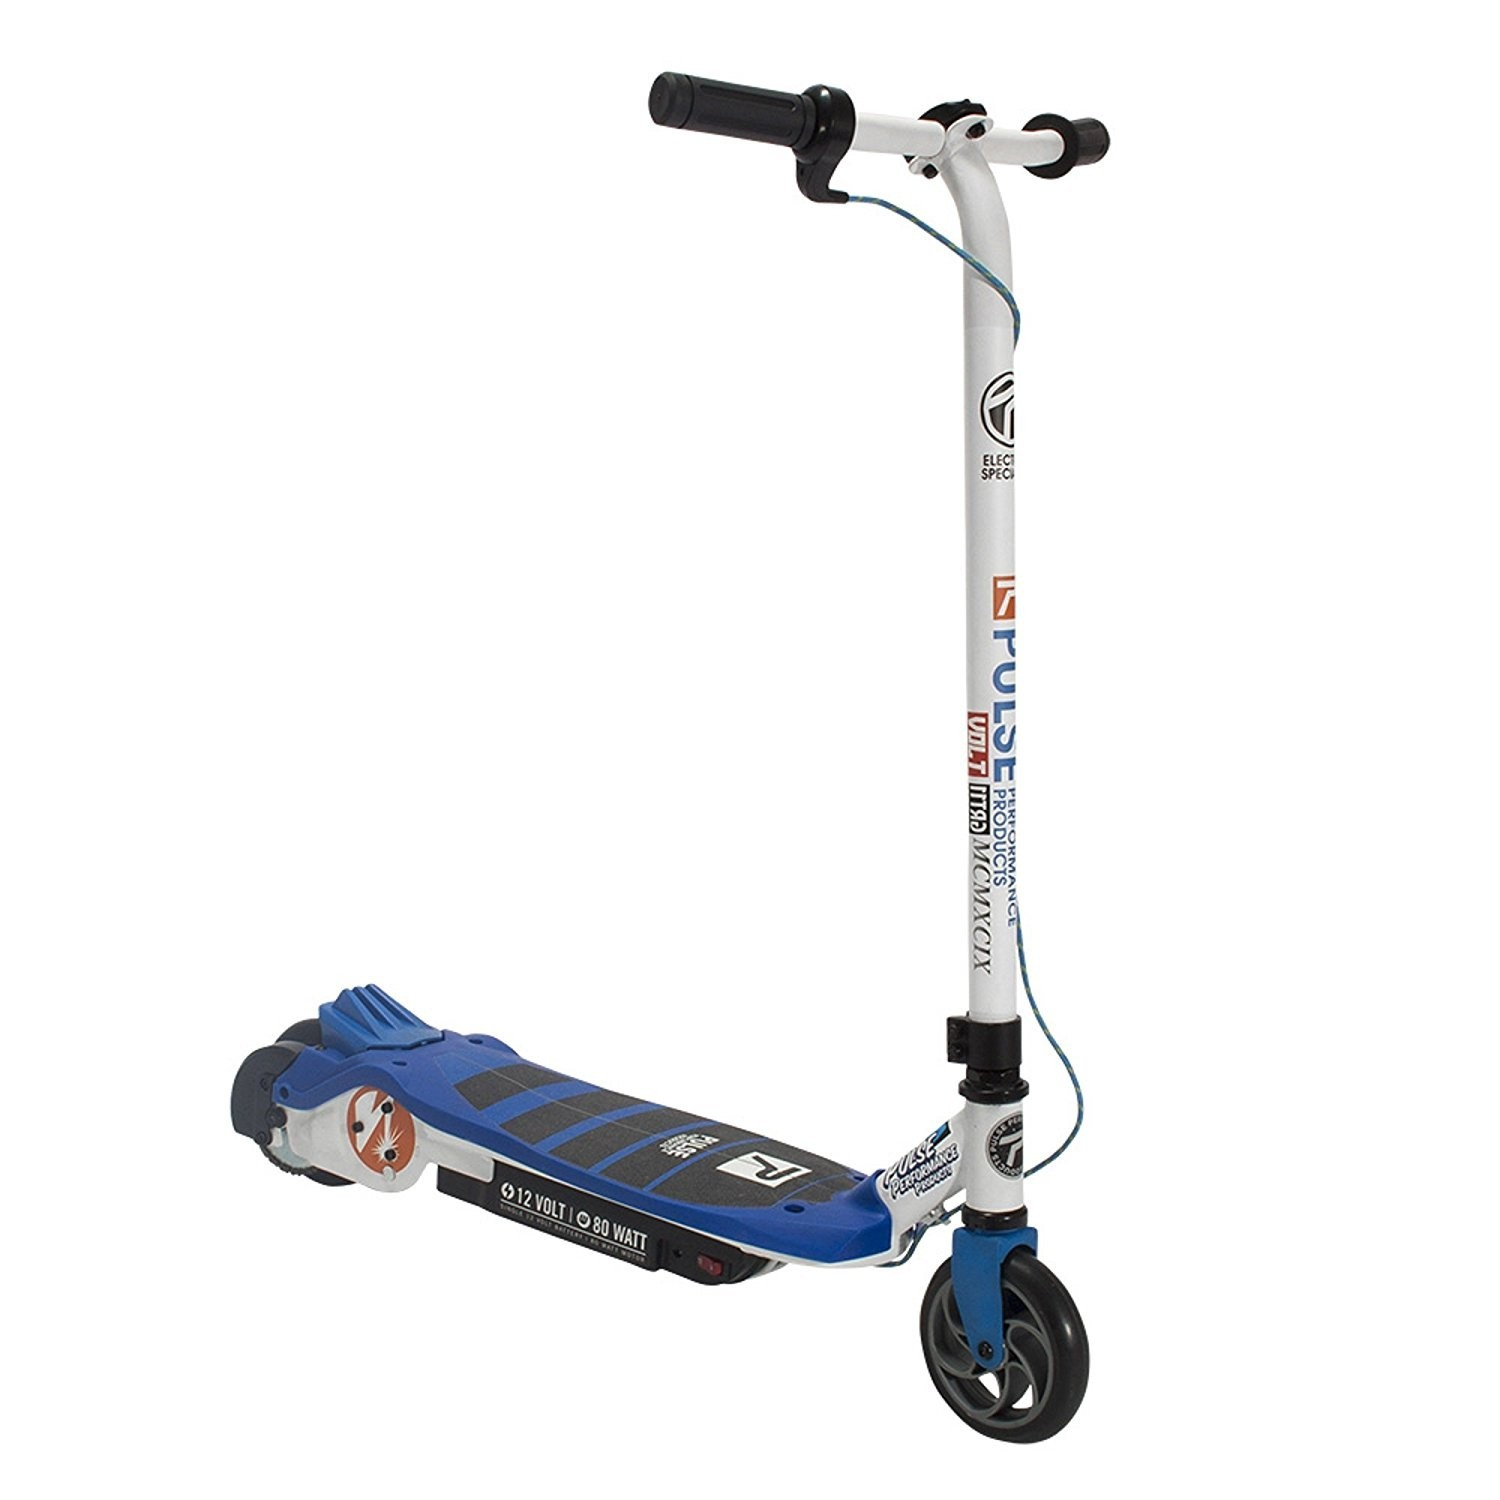 Top 7 Best Girls Electric Scooter